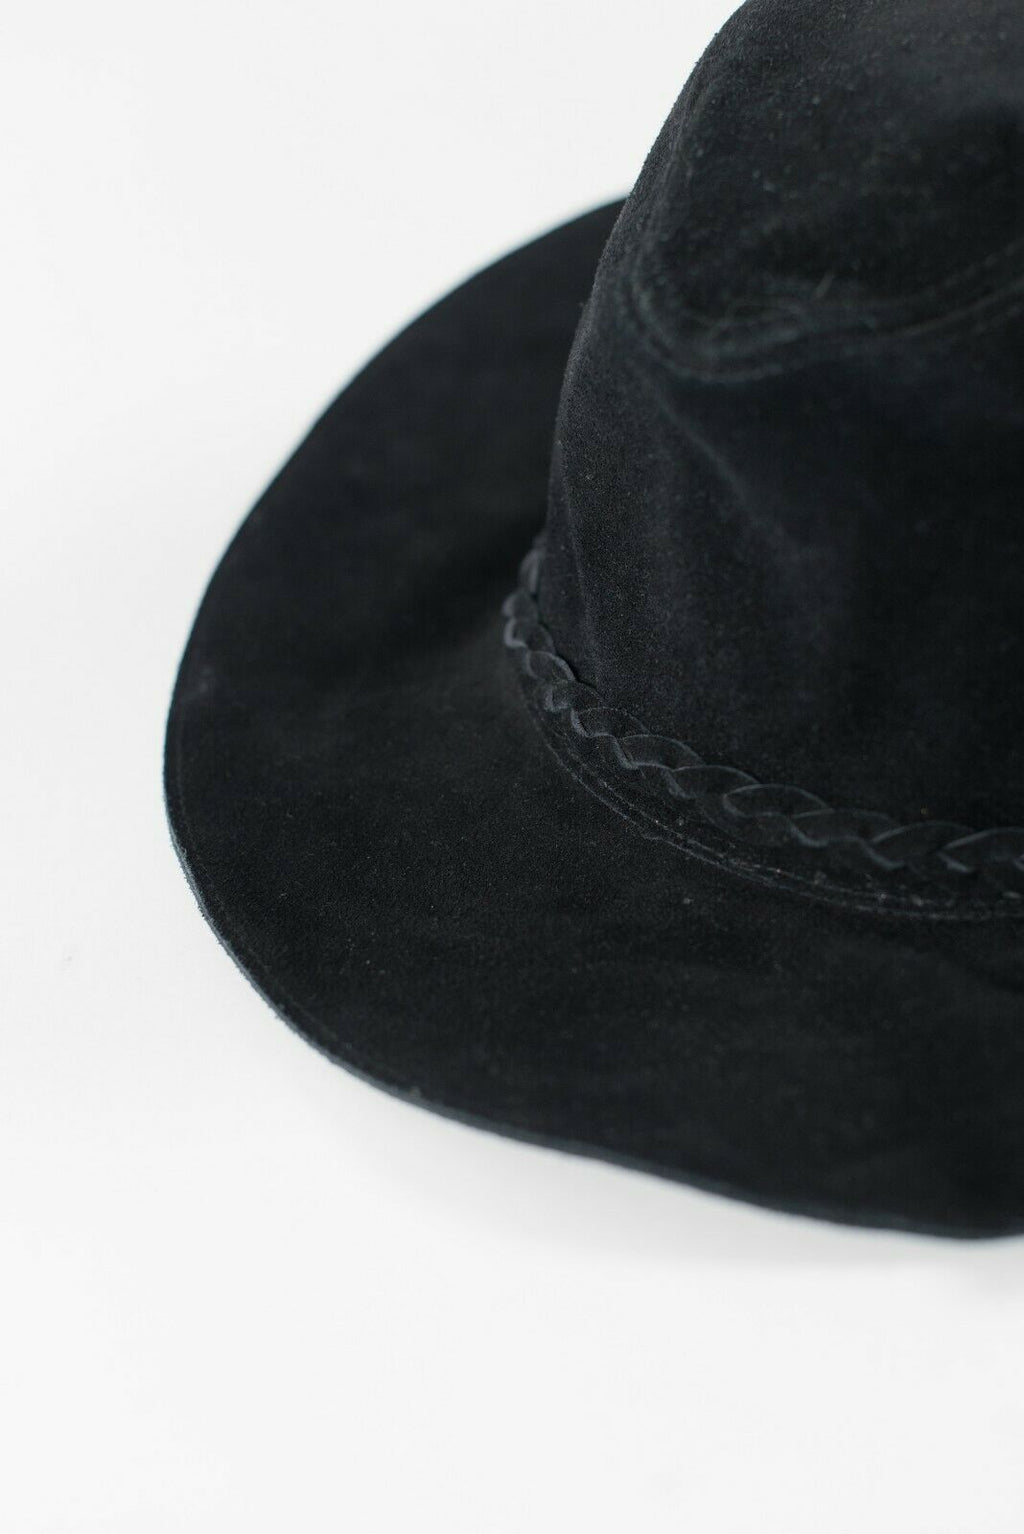 Staring at Stars Women's Small Black Hat Suede Leather Woven Trim Floppy Brim